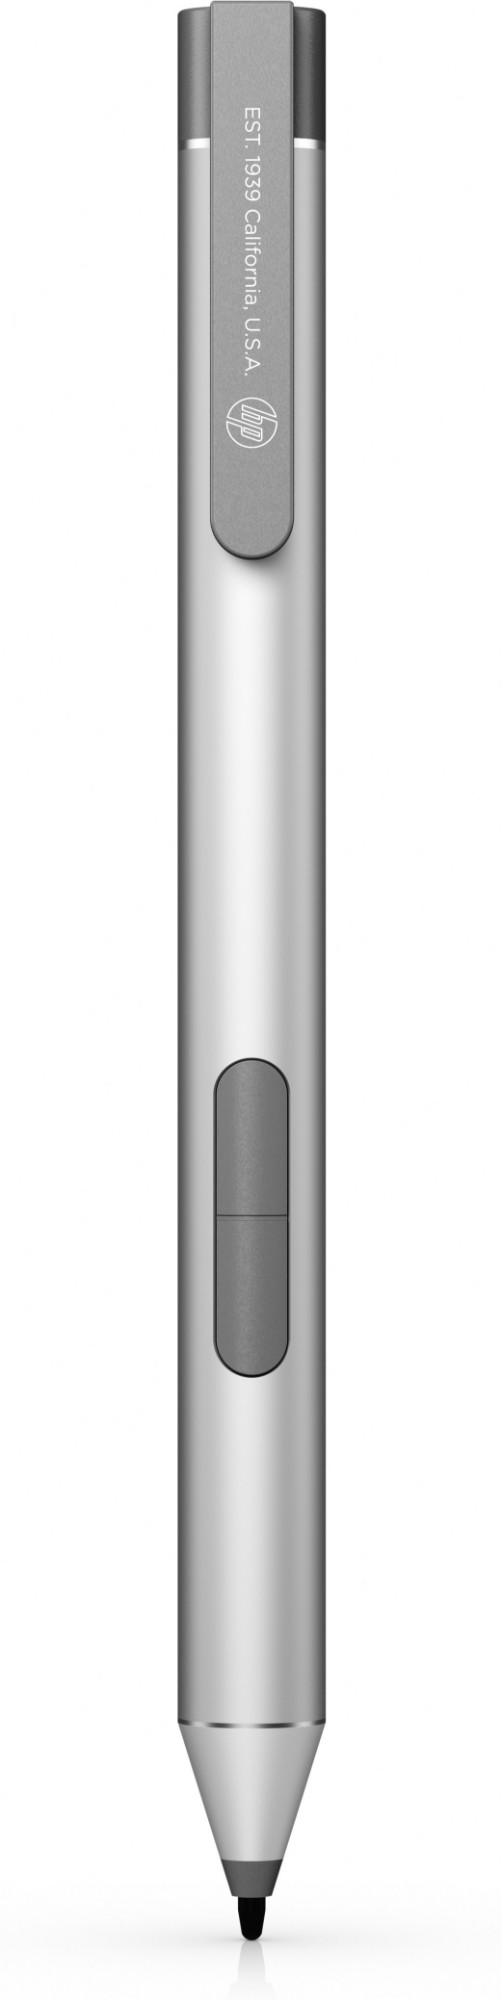 HP Active Pen with Spare Tips